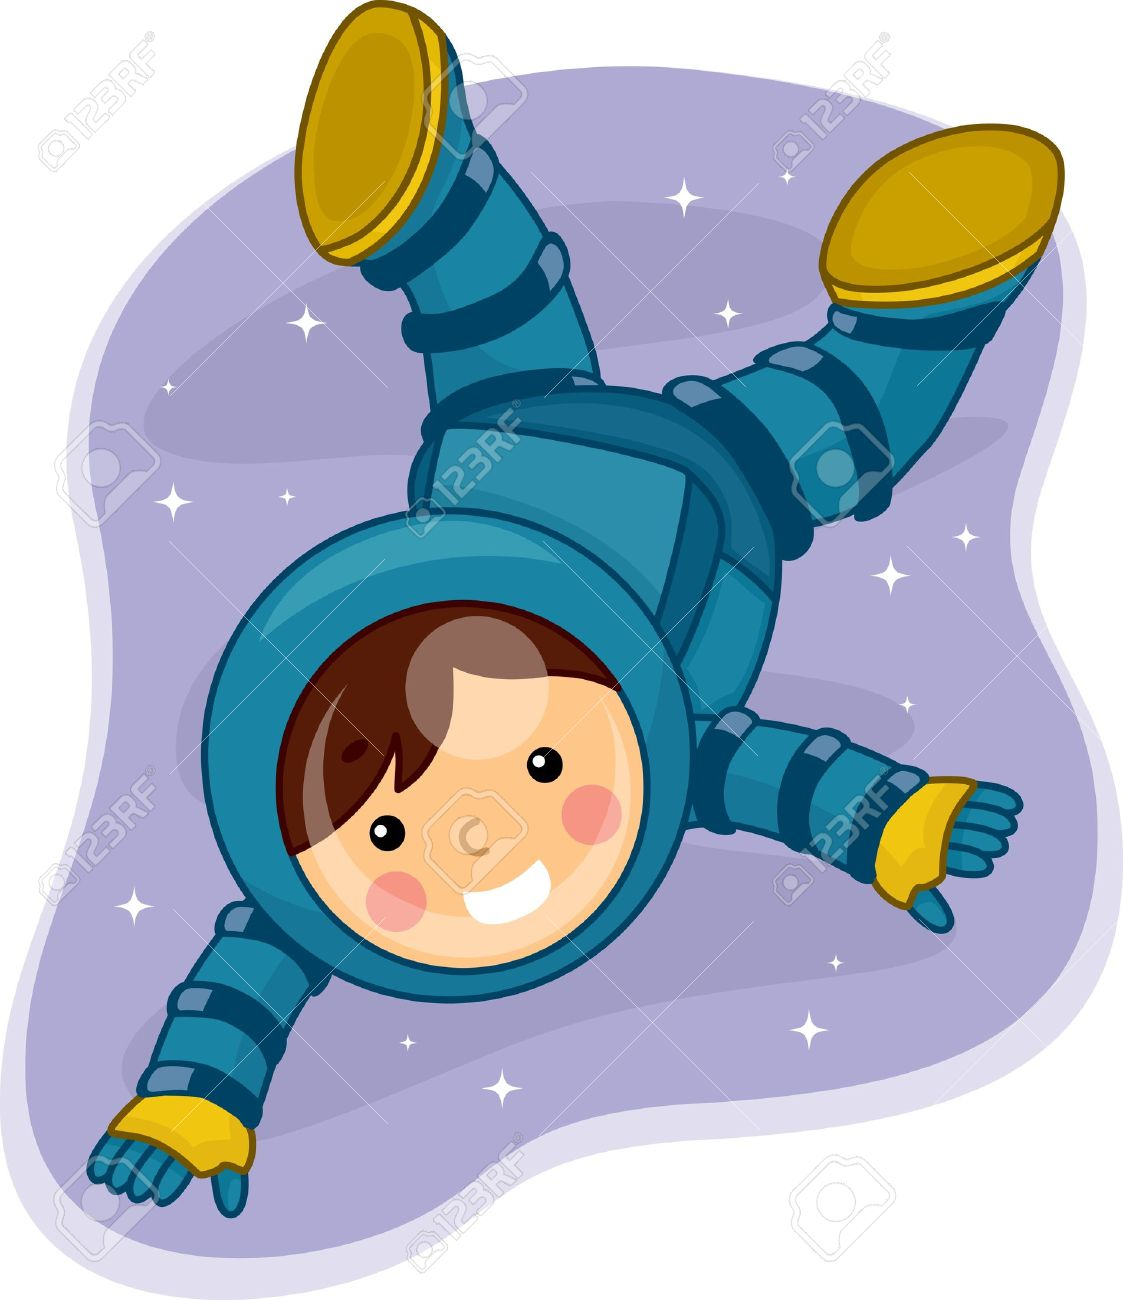 astronaut floating in space clipart - photo #34